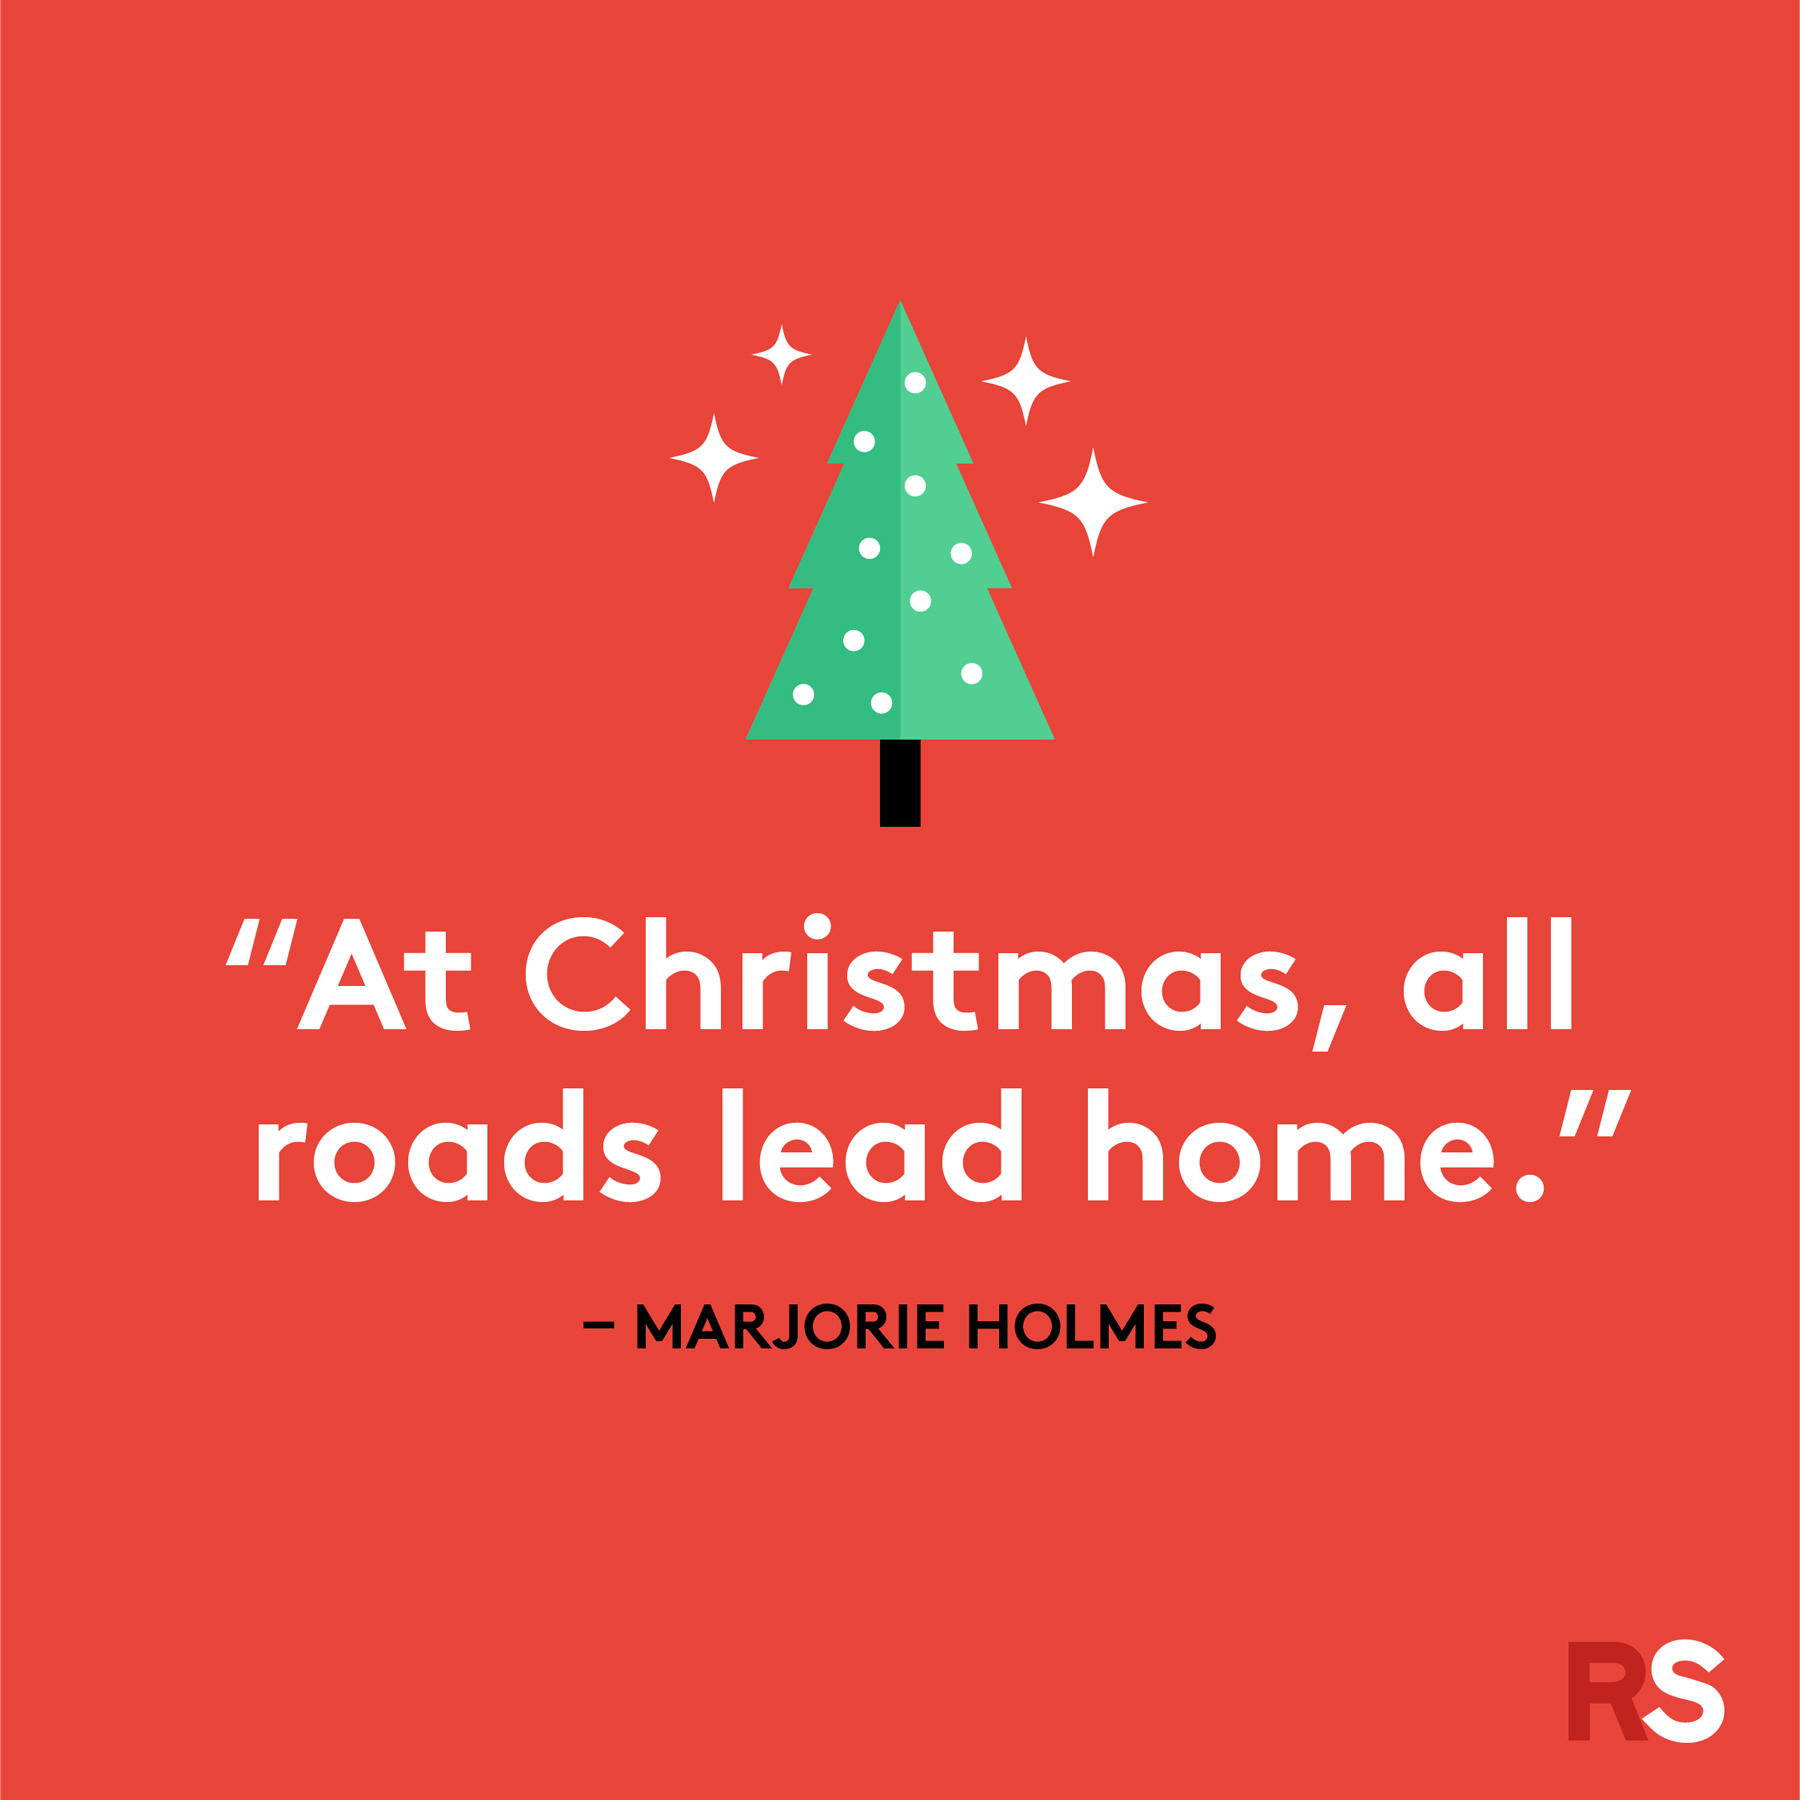 Best Christmas quotes - Marjorie Holmes